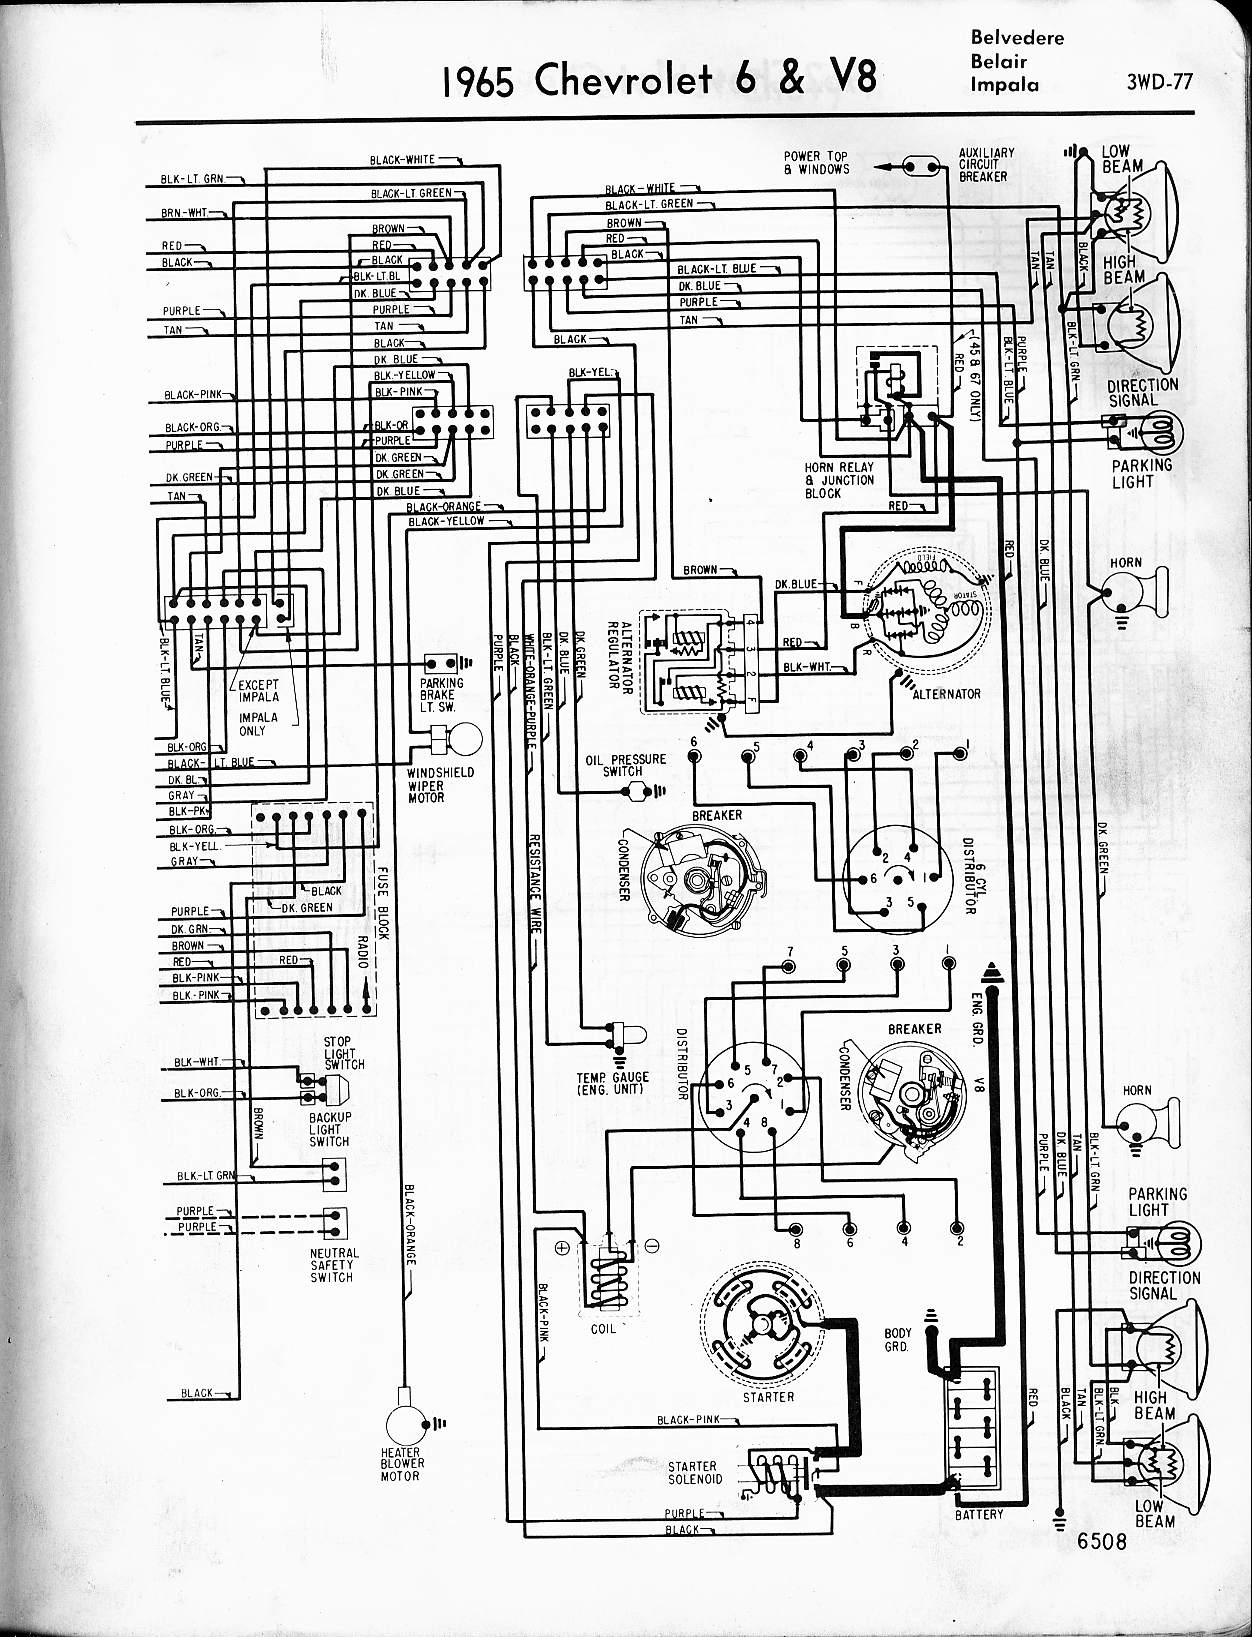 MWireChev65_3WD 077 69 chevelle wiring diagram 69 chevelle engine wiring diagram  at soozxer.org